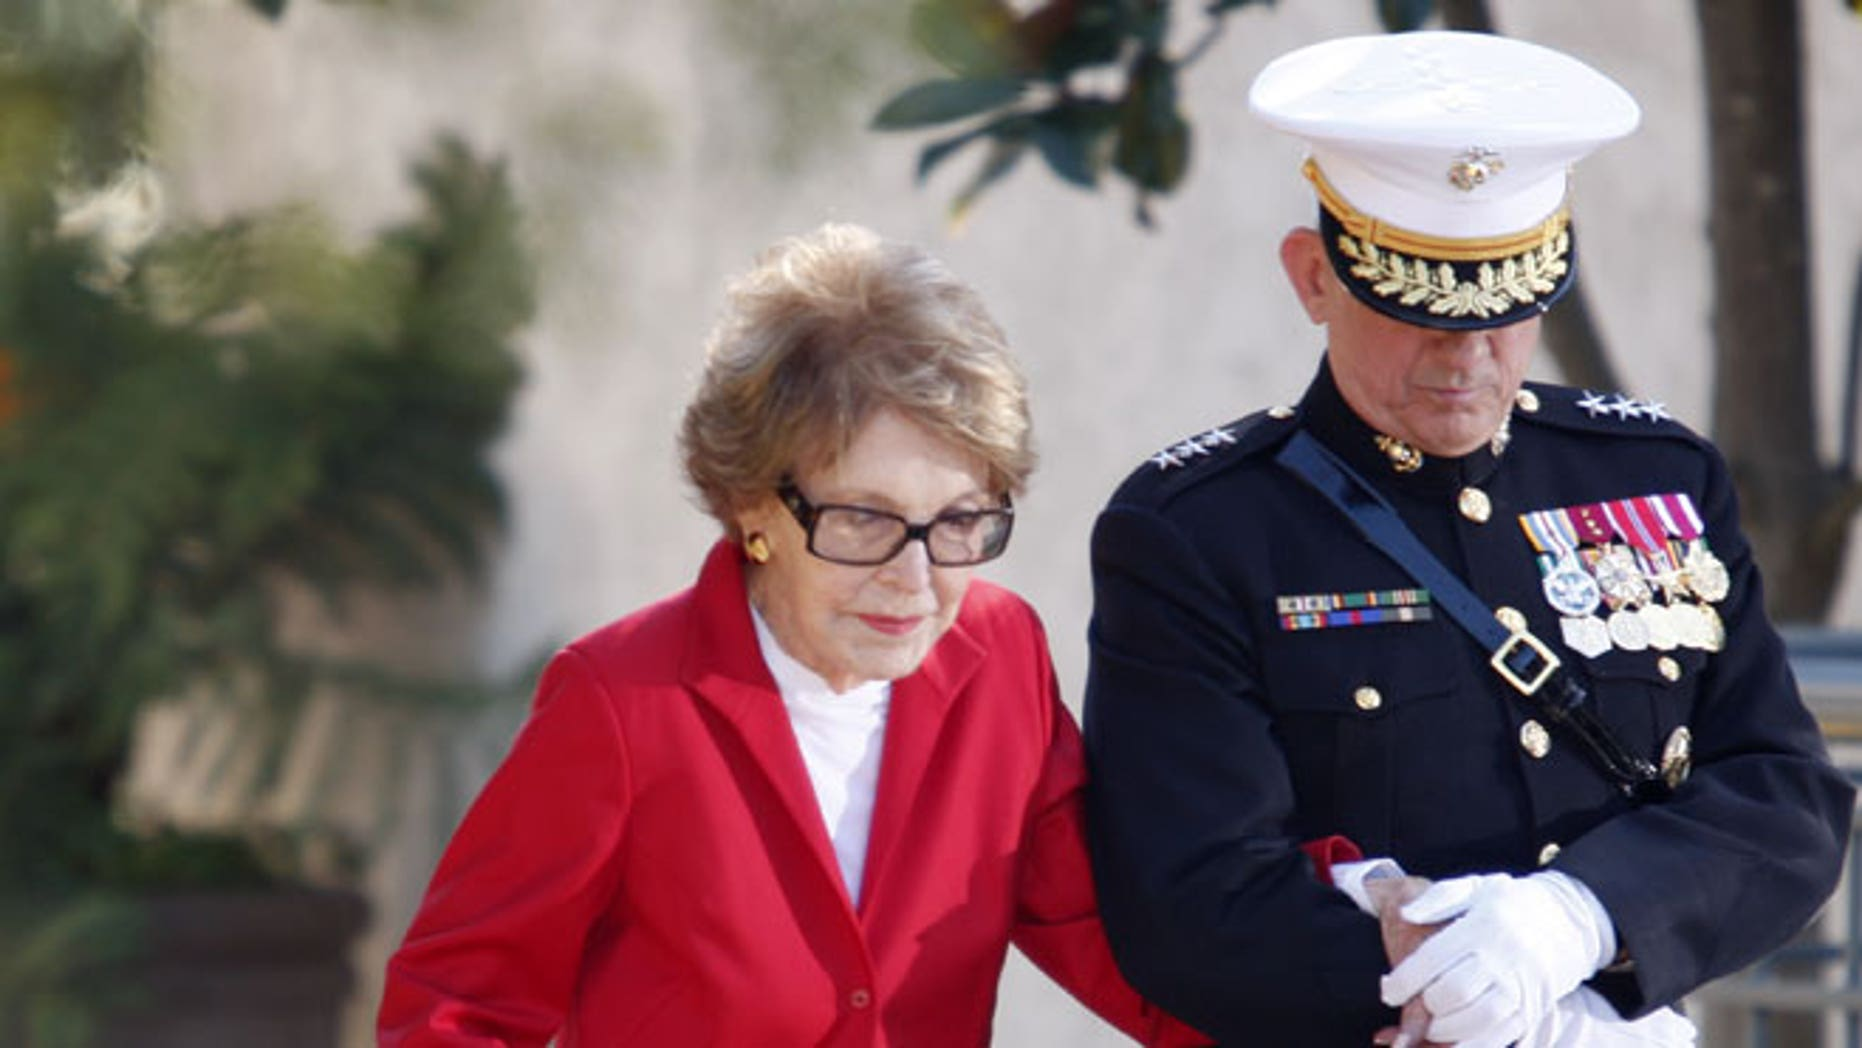 February 6, 2011: Former first lady Nancy Reagan is helped by Marine Lt. Gen. George J. Flynn as she arrives for a wreath laying ceremony at the memorial of her husband former U.S. President Ronald Reagan during the centennial birthday celebration at the Reagan Library, in Simi Valley, Calif.